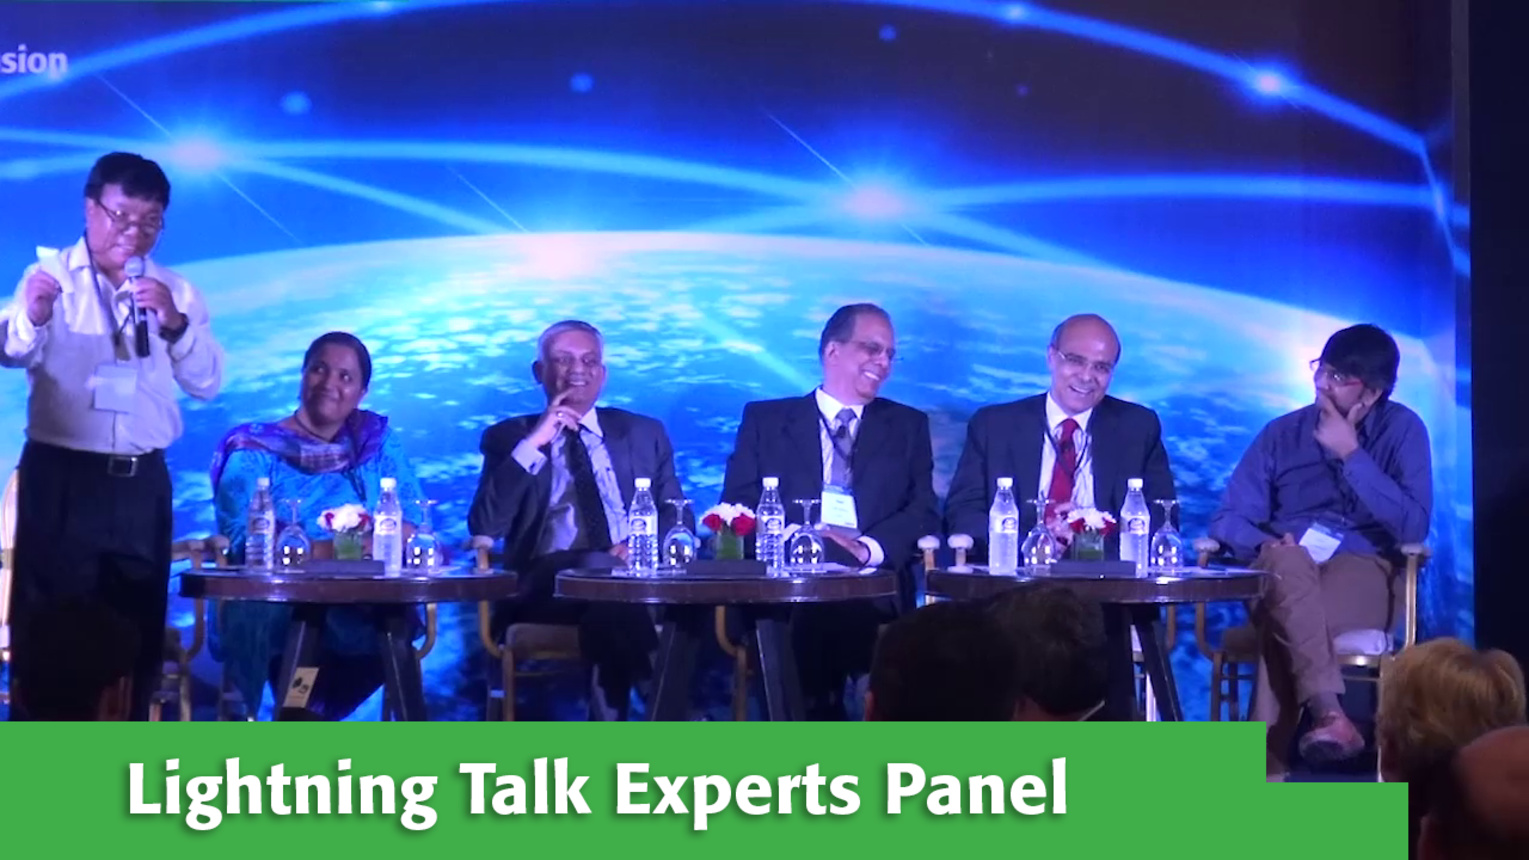 Lightning Talk Experts Panel at Internet Inclusion: Advancing Solutions, Delhi, 2016